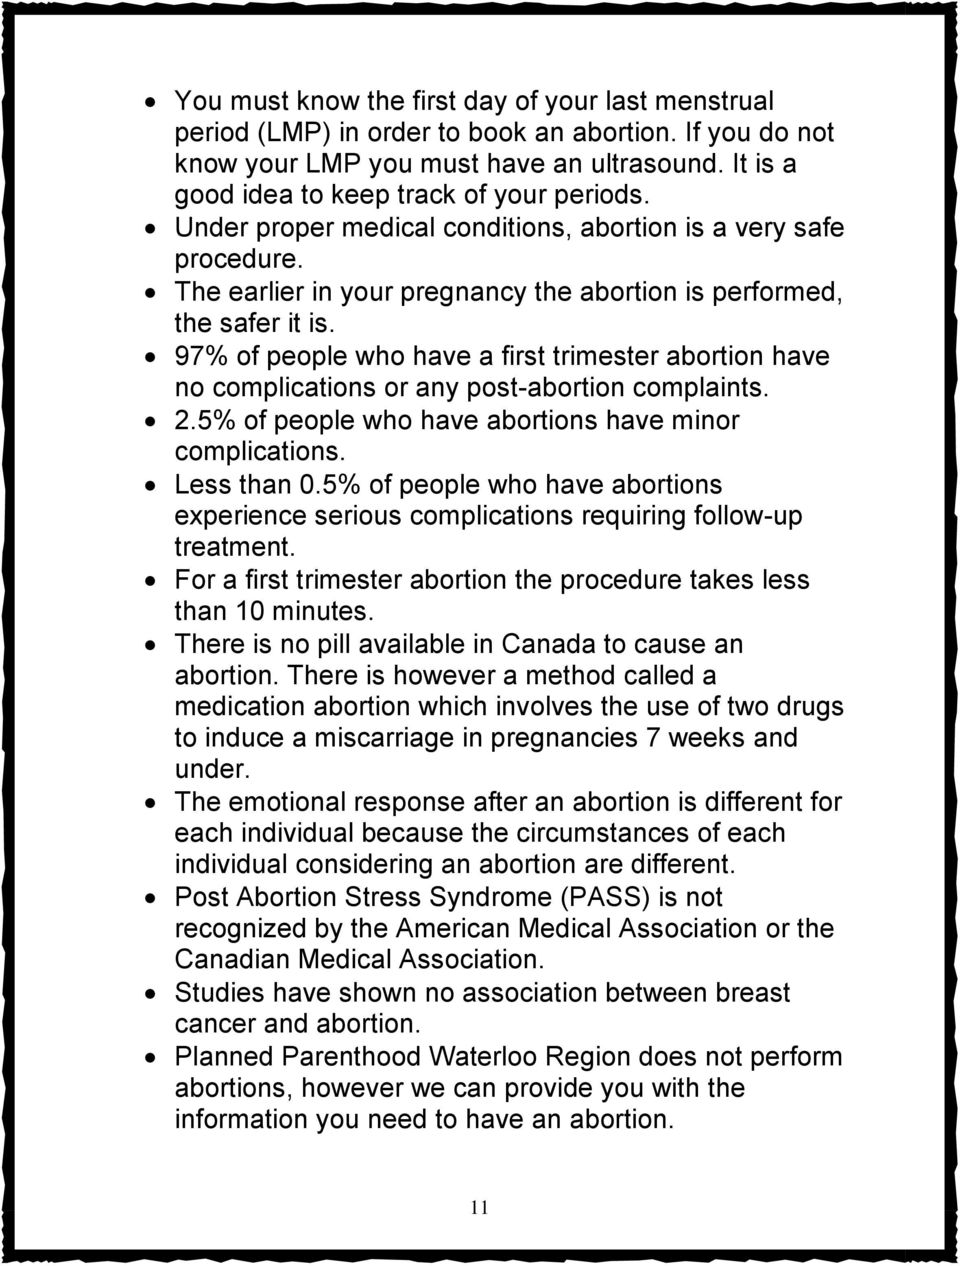 97% of people who have a first trimester abortion have no complications or any post-abortion complaints. 2.5% of people who have abortions have minor complications. Less than 0.